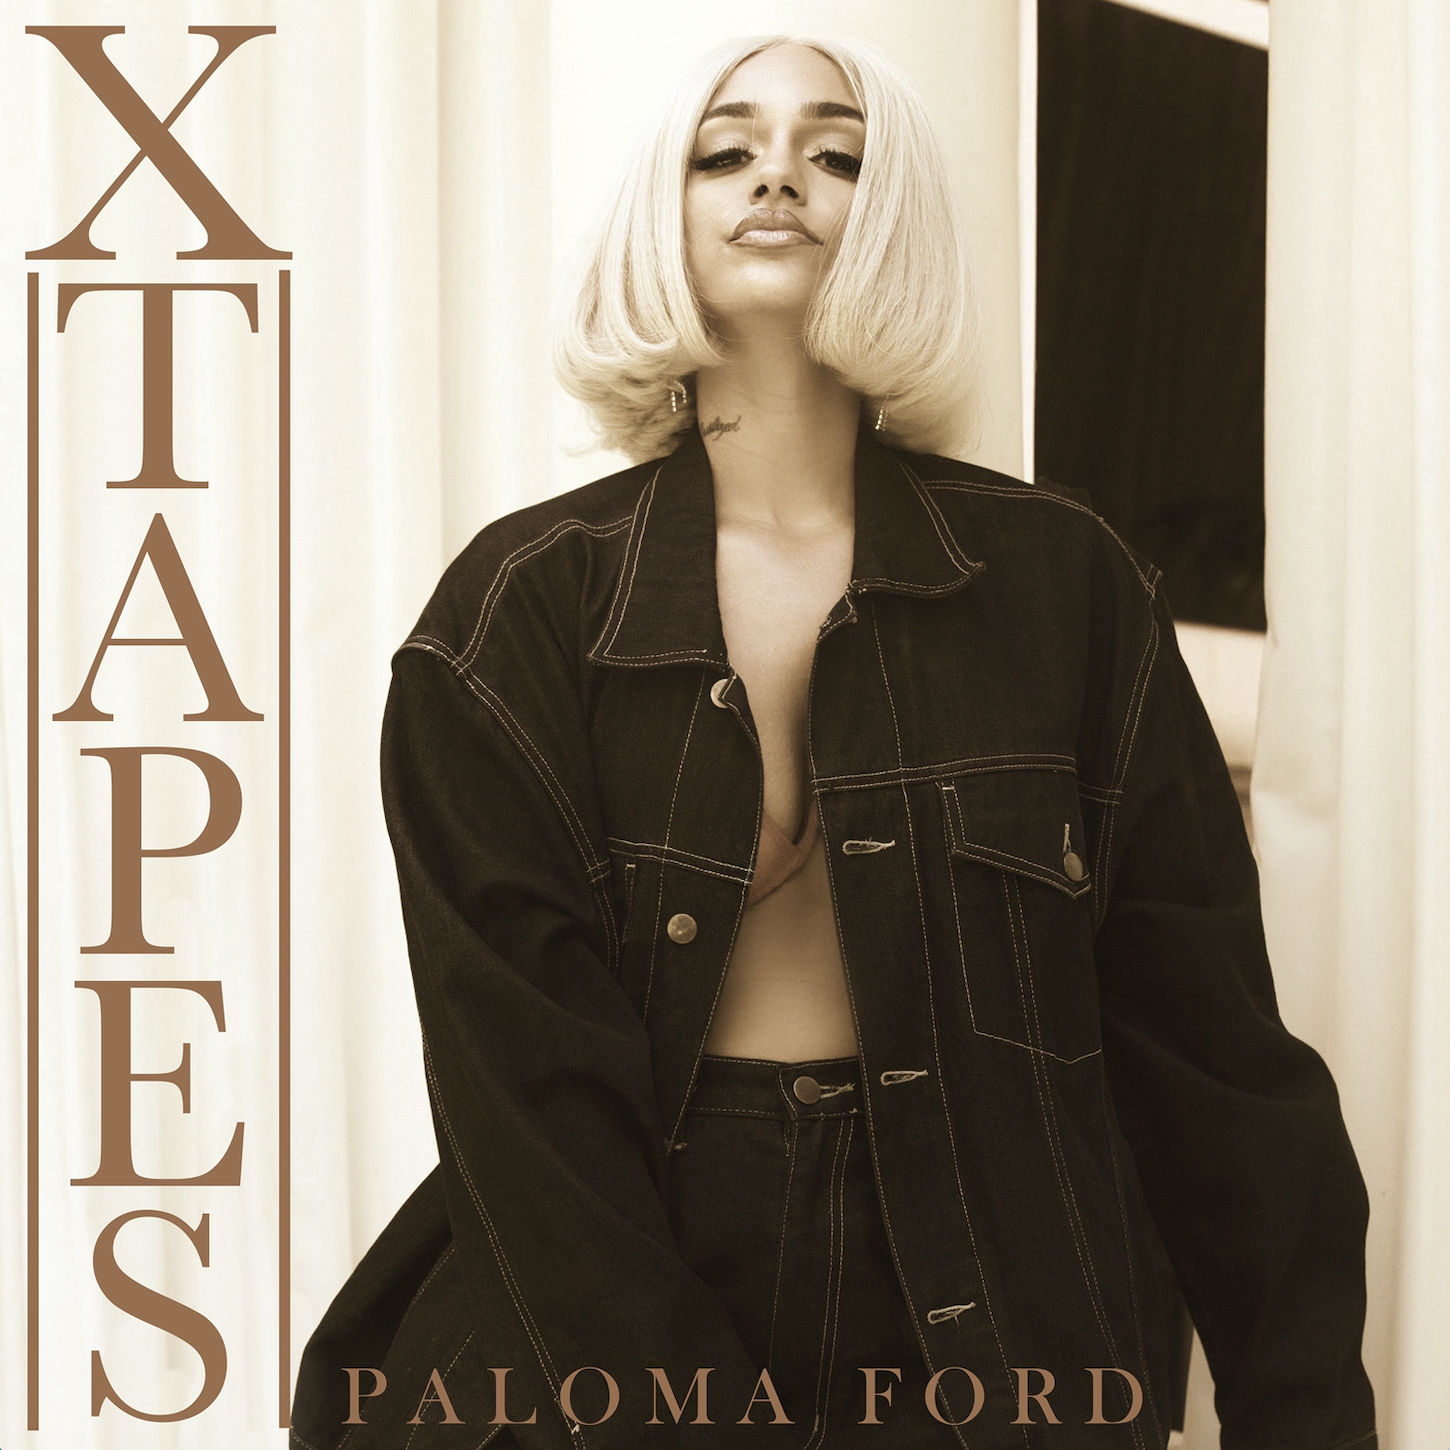 R&B SENSATION, SINGER/ SONGWRITER PALOMA FORD PREMIERES X TAPES